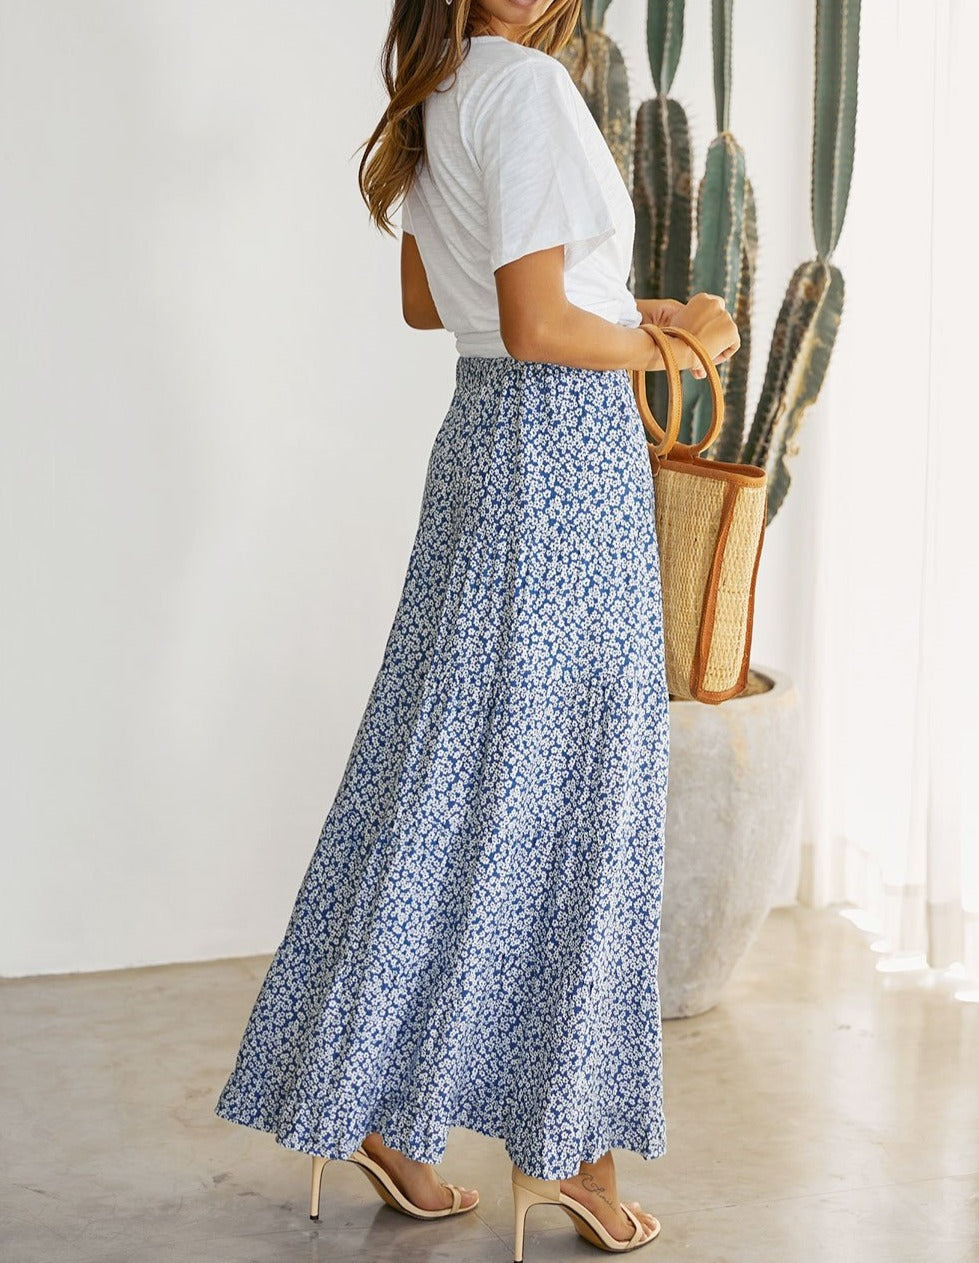 Sky Blue Traveller Skirt